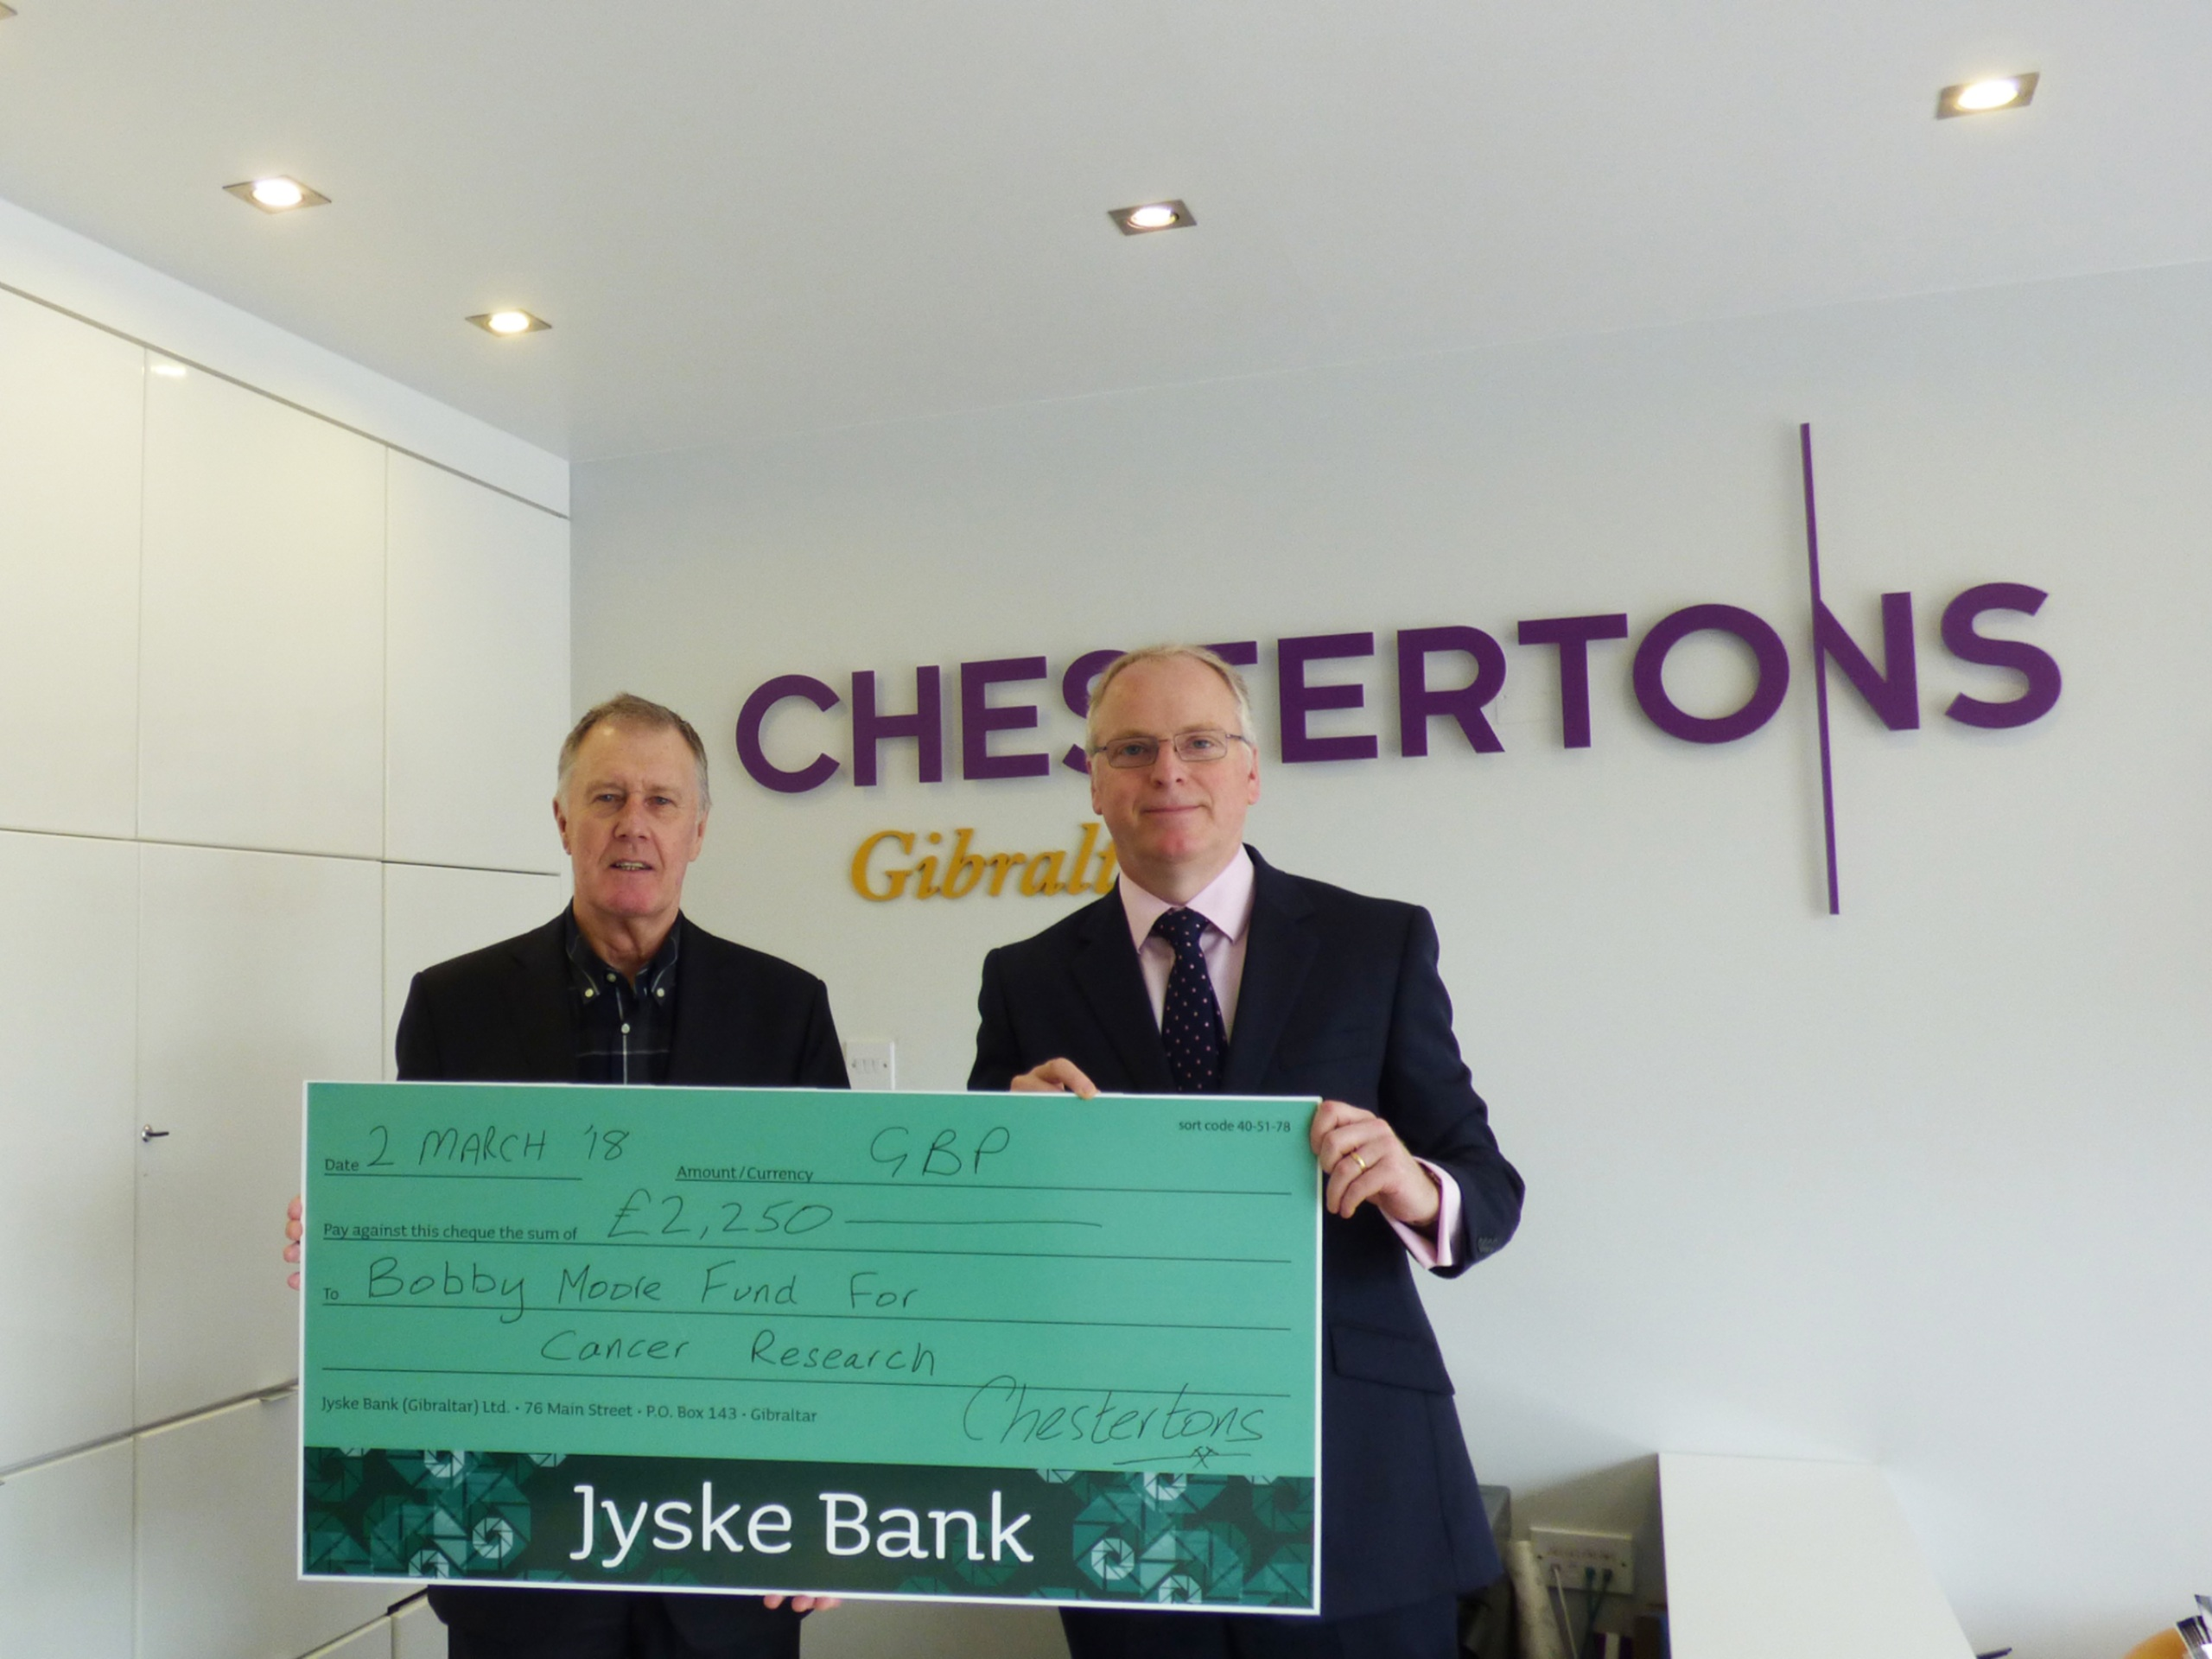 Chestertons' 10th anniversary raises £4,500 for cancer charities Image